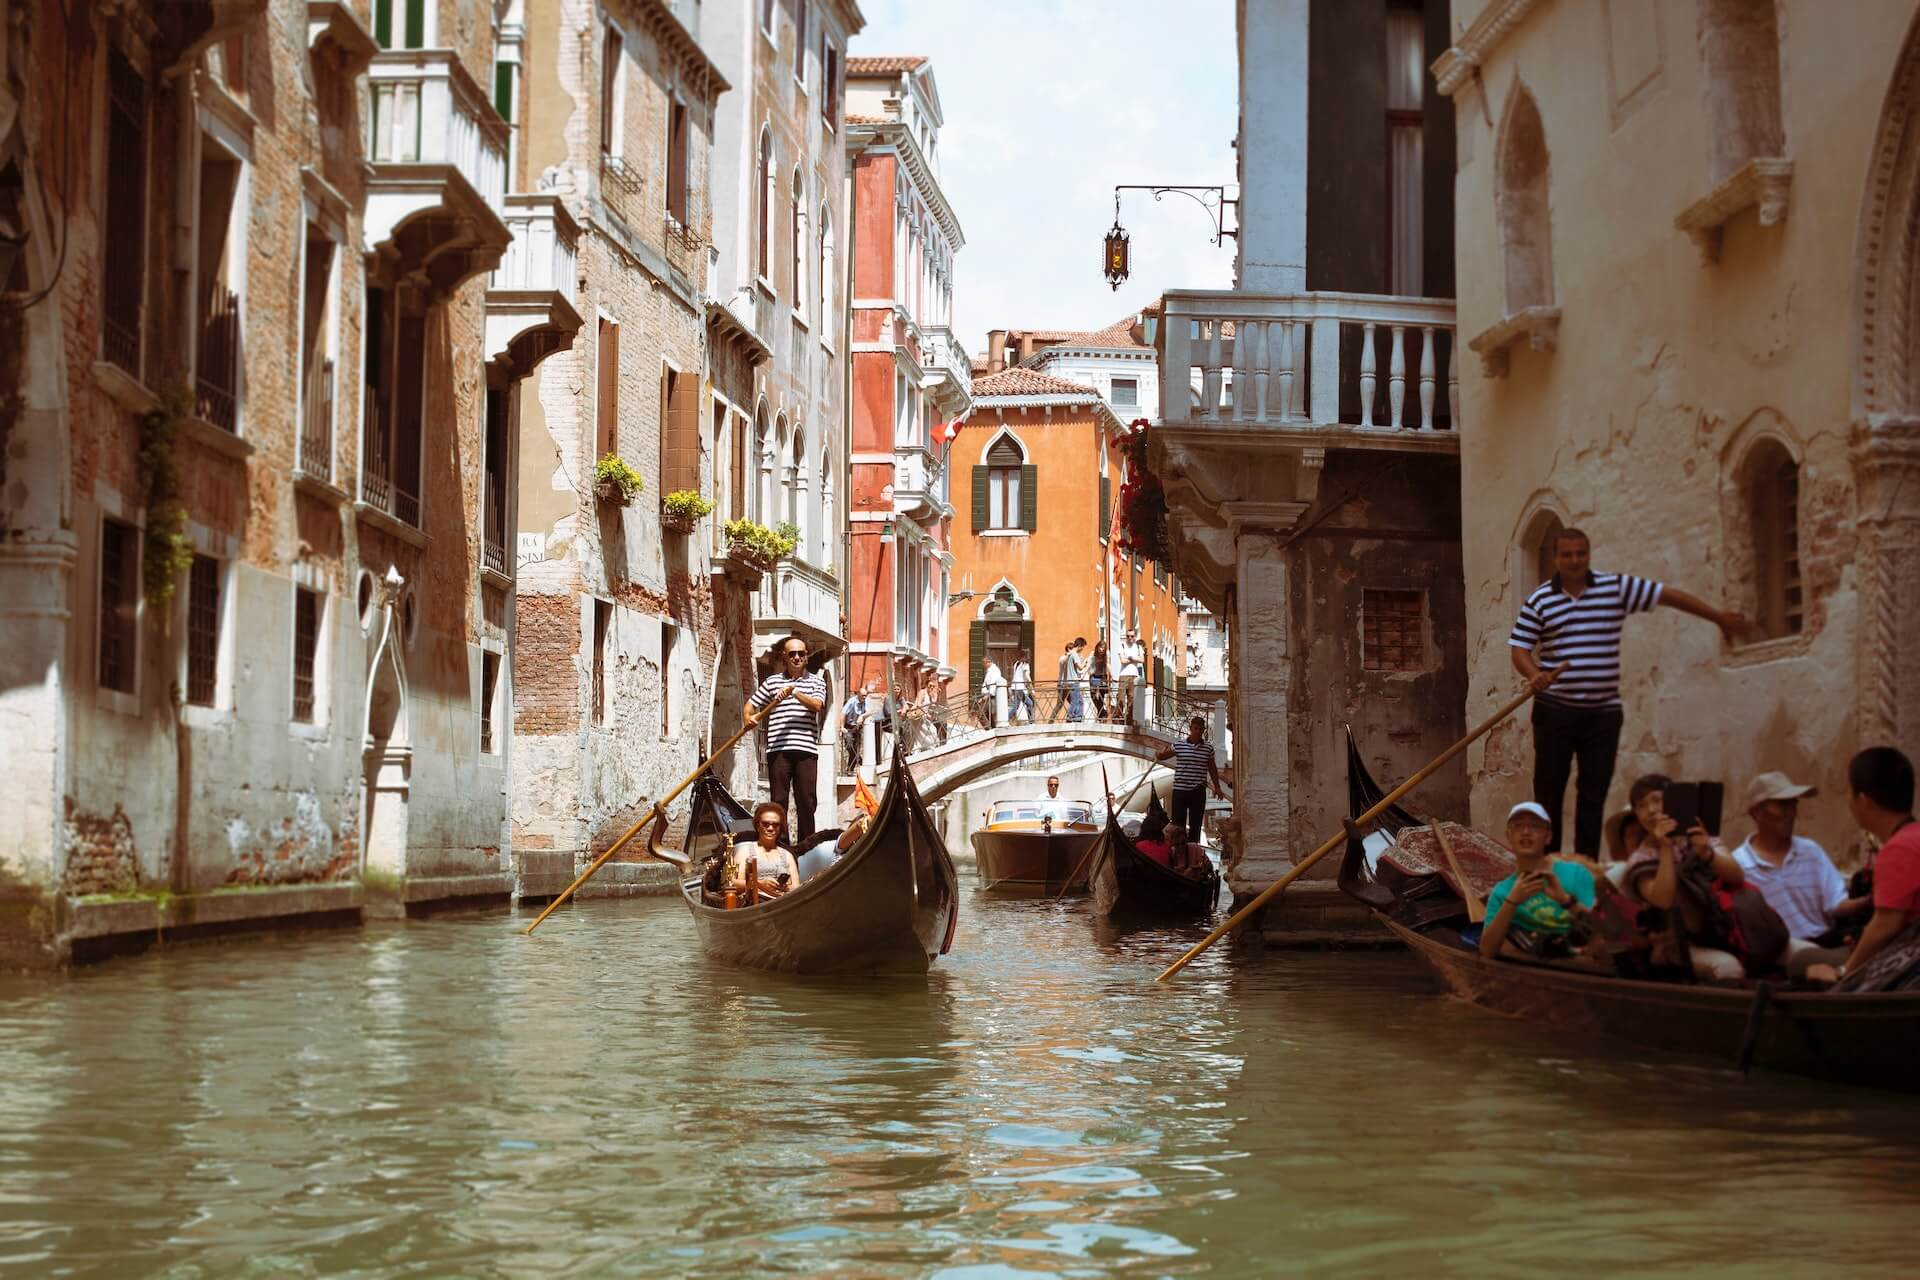 two boats full of people on the canals of venice